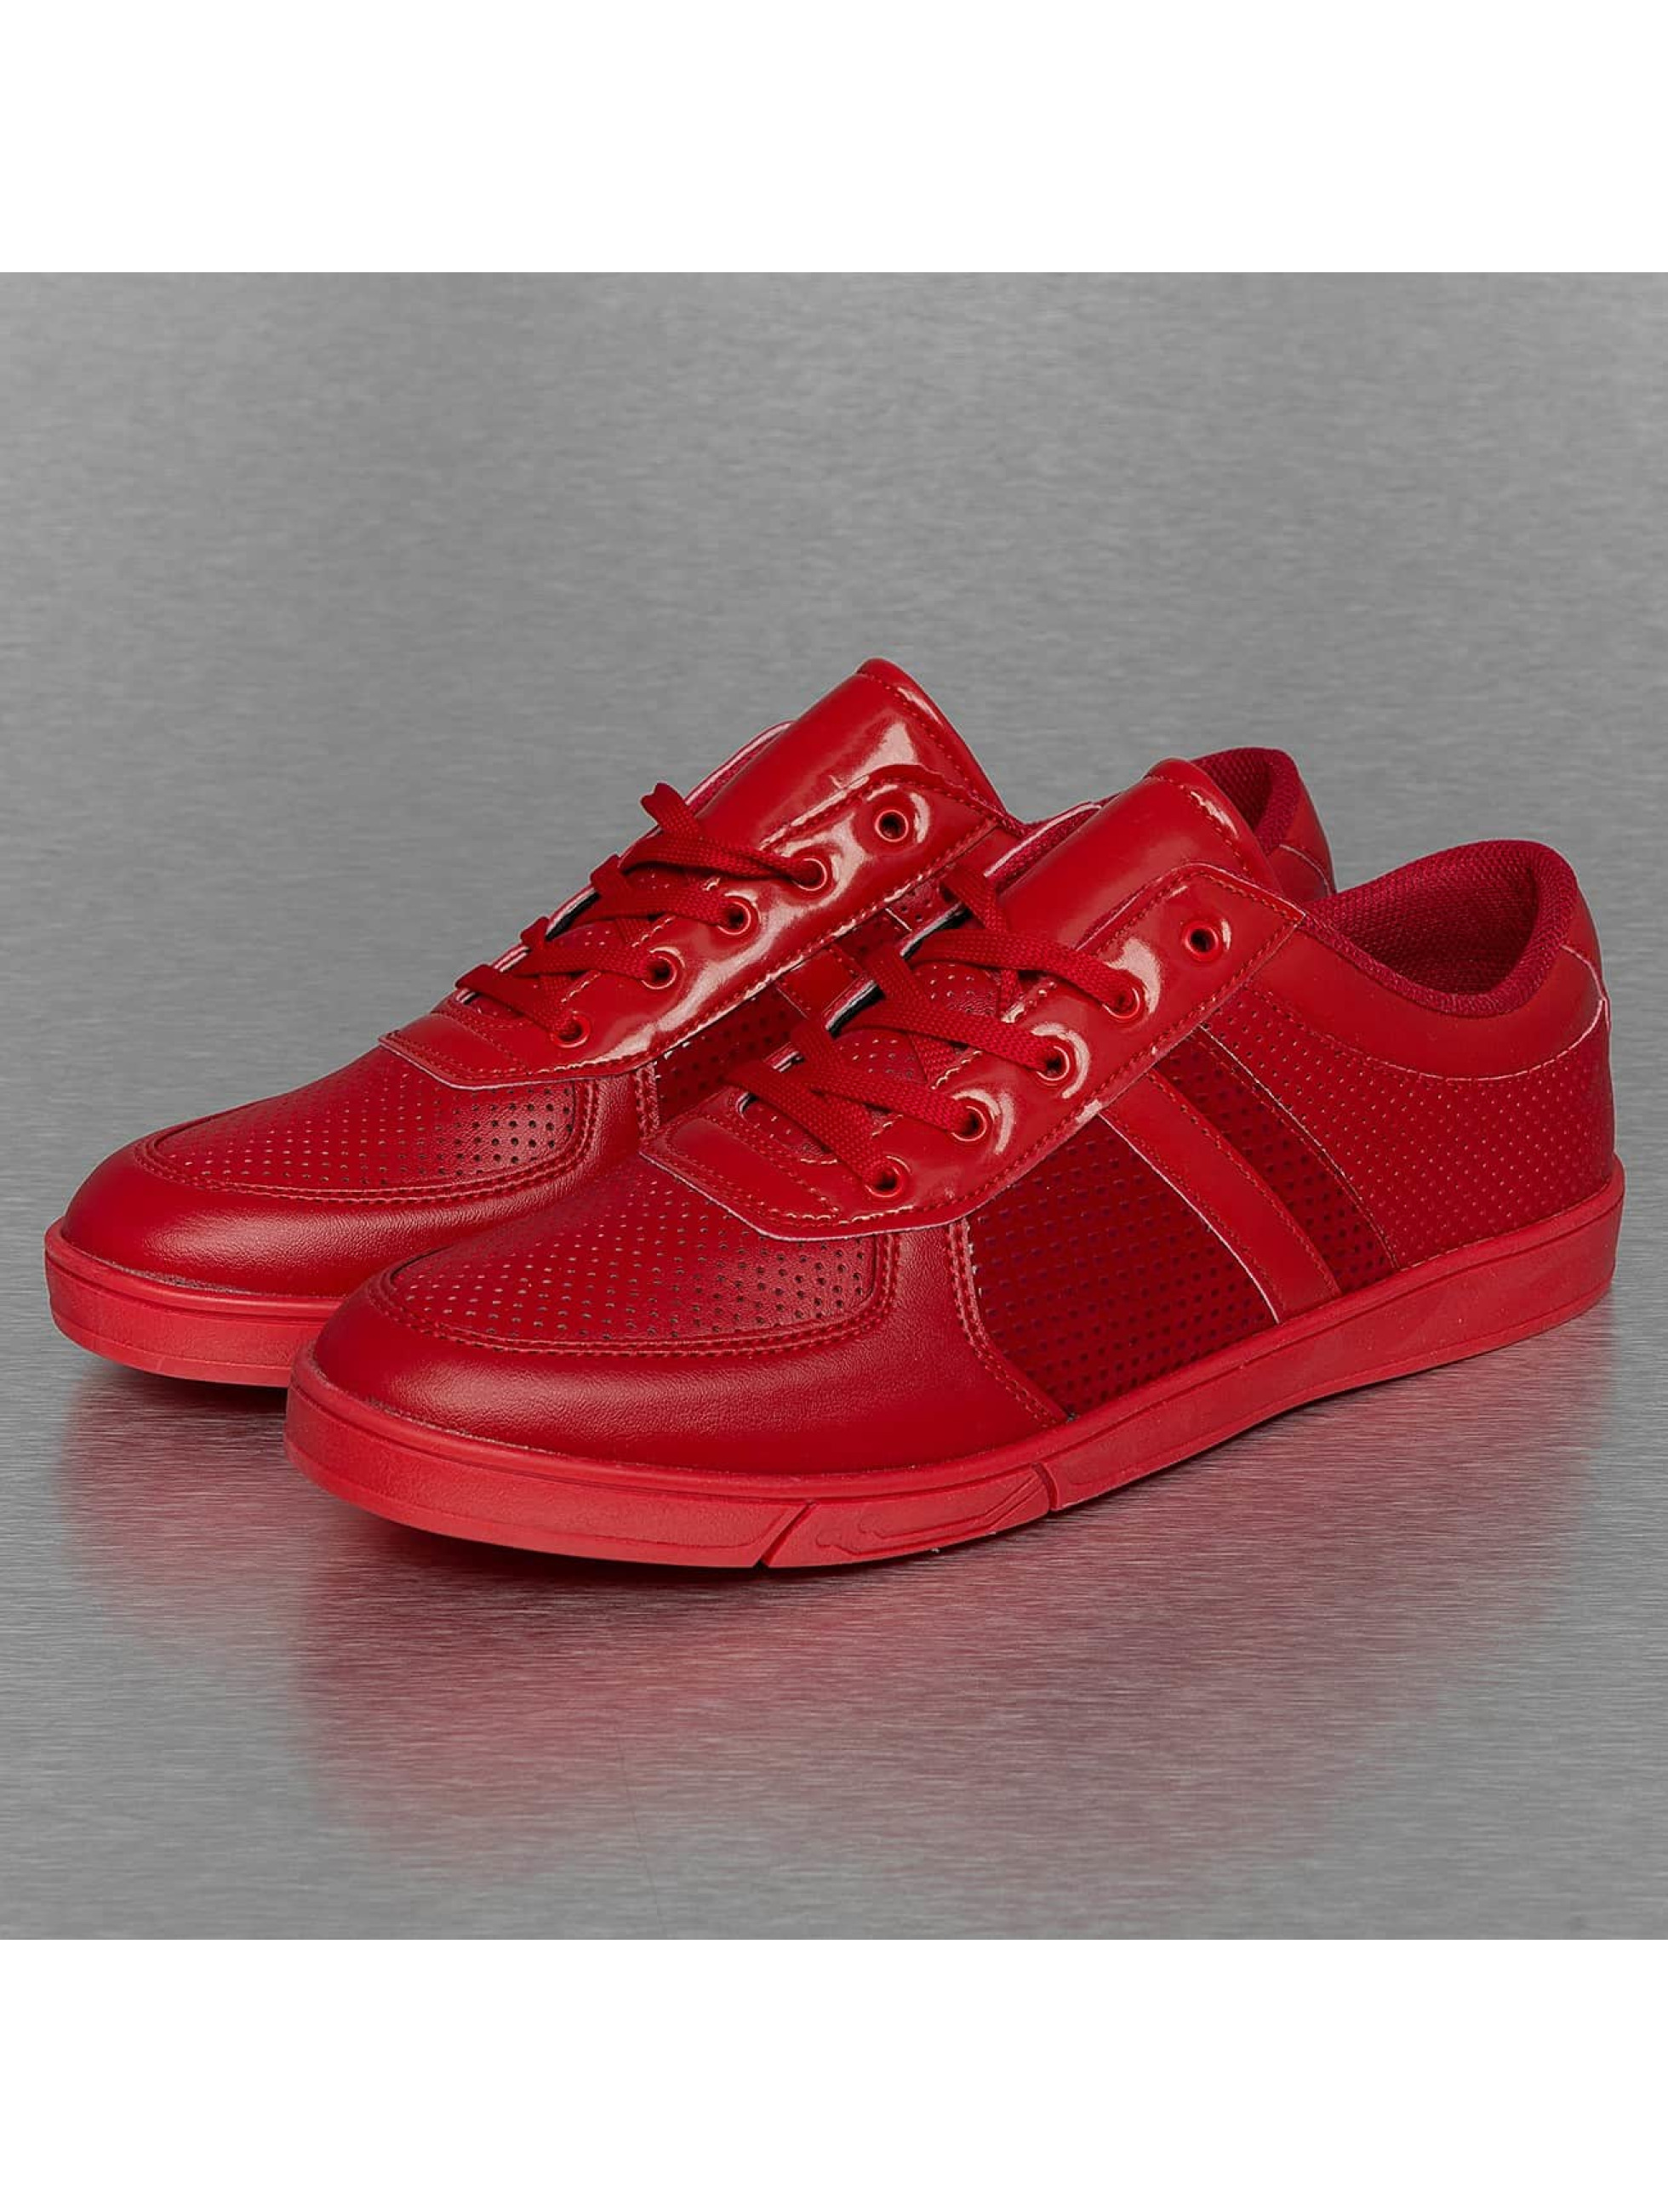 New York Style Sneakers Perforated Pattern red